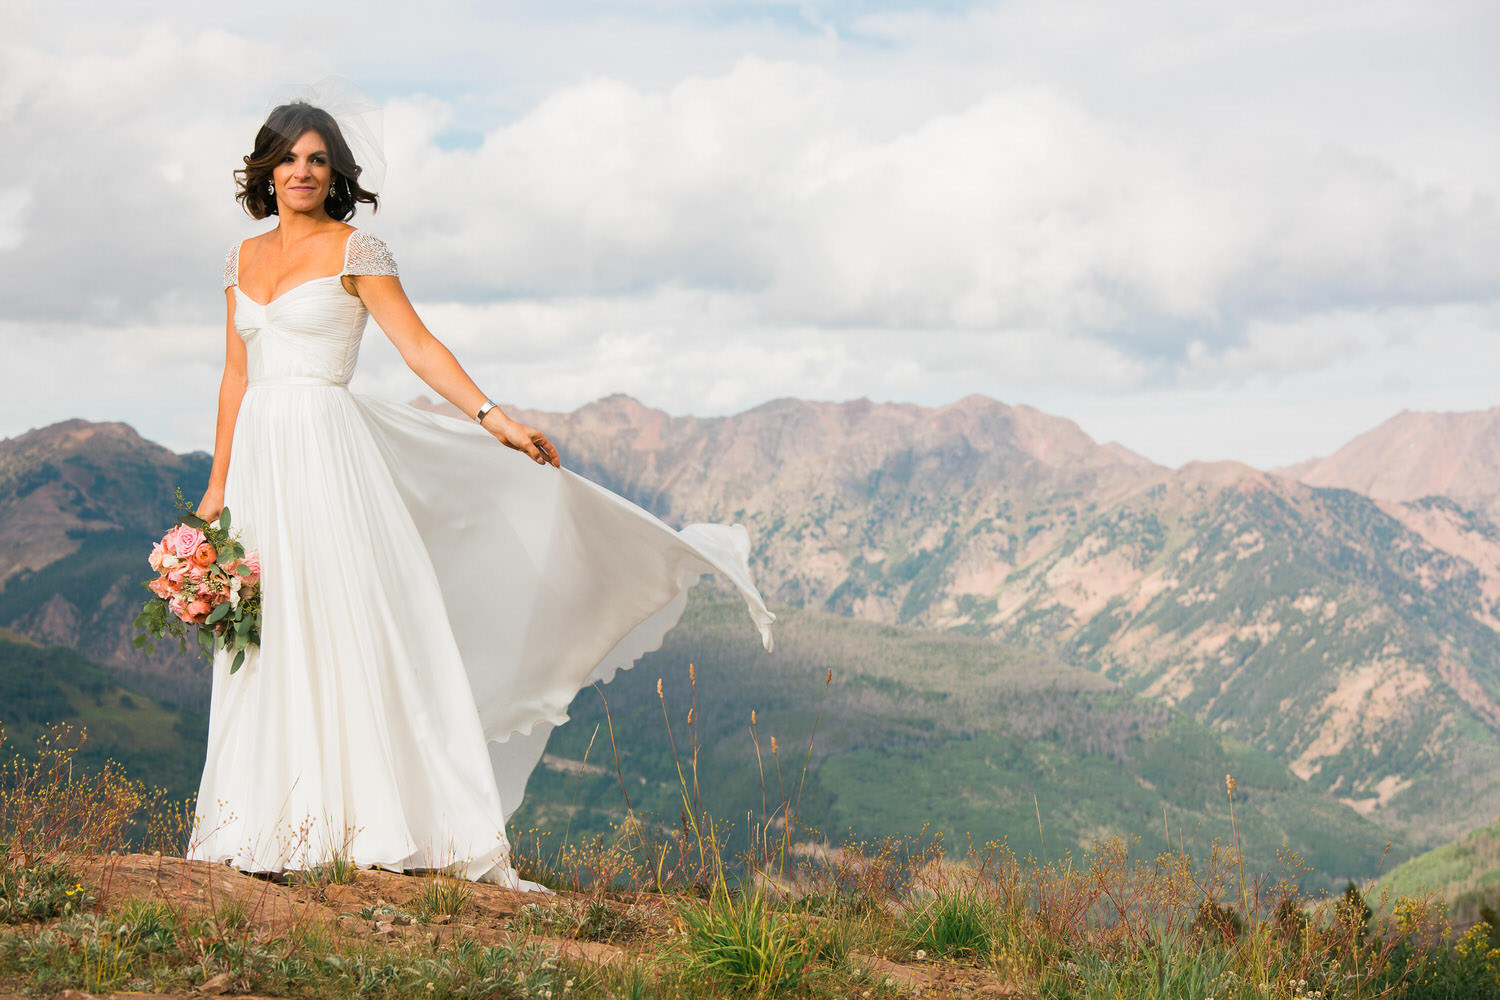 vail-wedding-photographer-tomKphoto-008.jpg